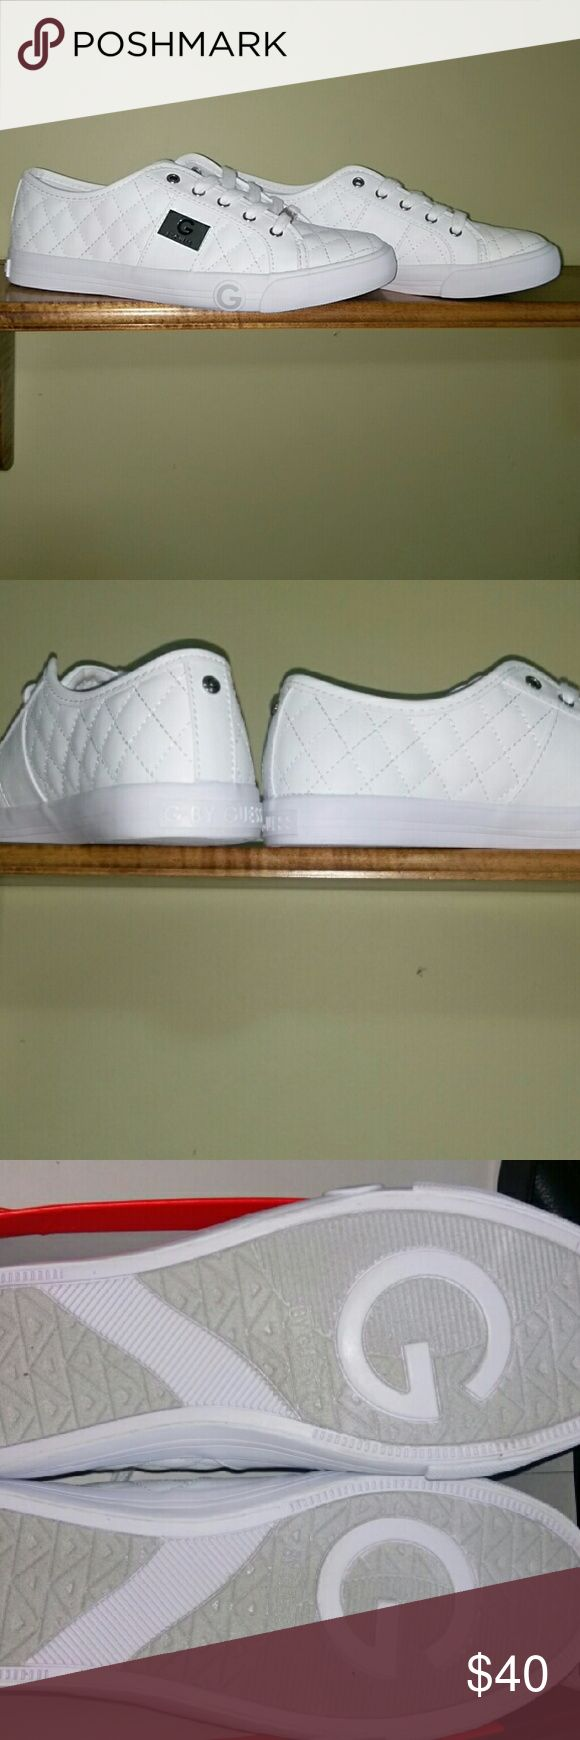 Ladies shoes White leather Guess shoes, nice style for the summer? NWT Guess Shoes Sneakers